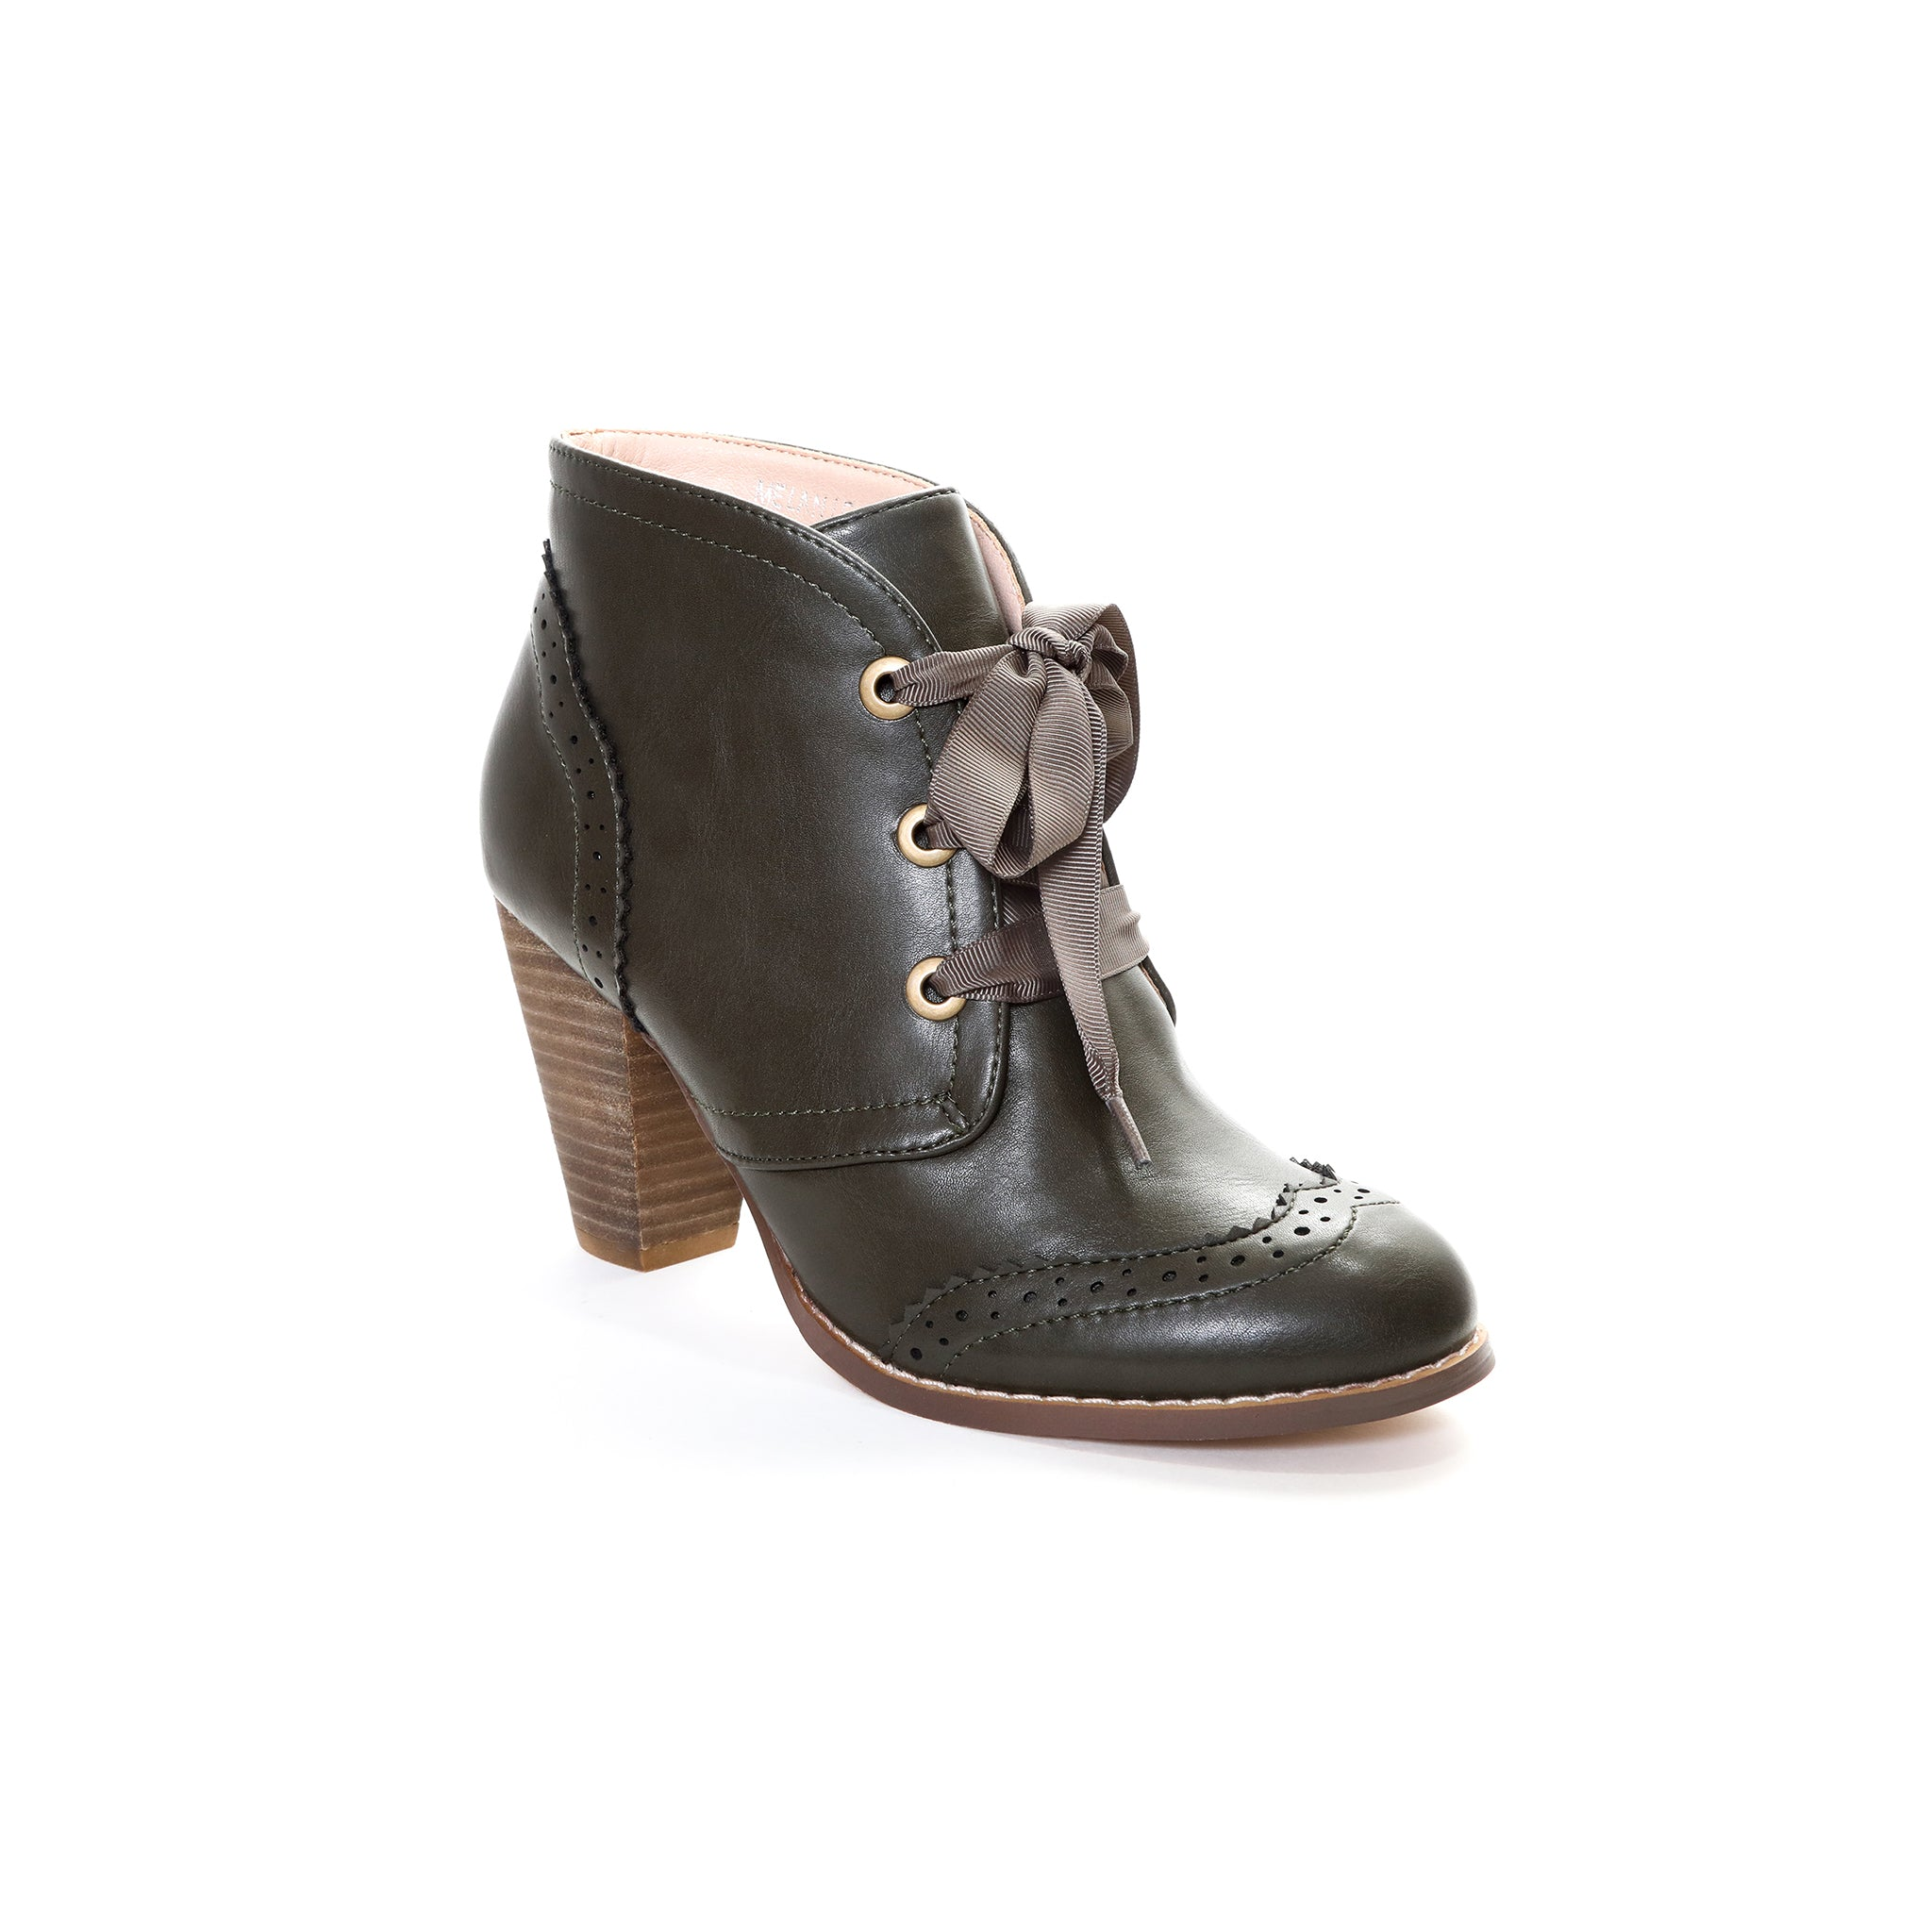 Melanie by Dolce Nome | Lace-Up Ankle Boots in Green (main view)